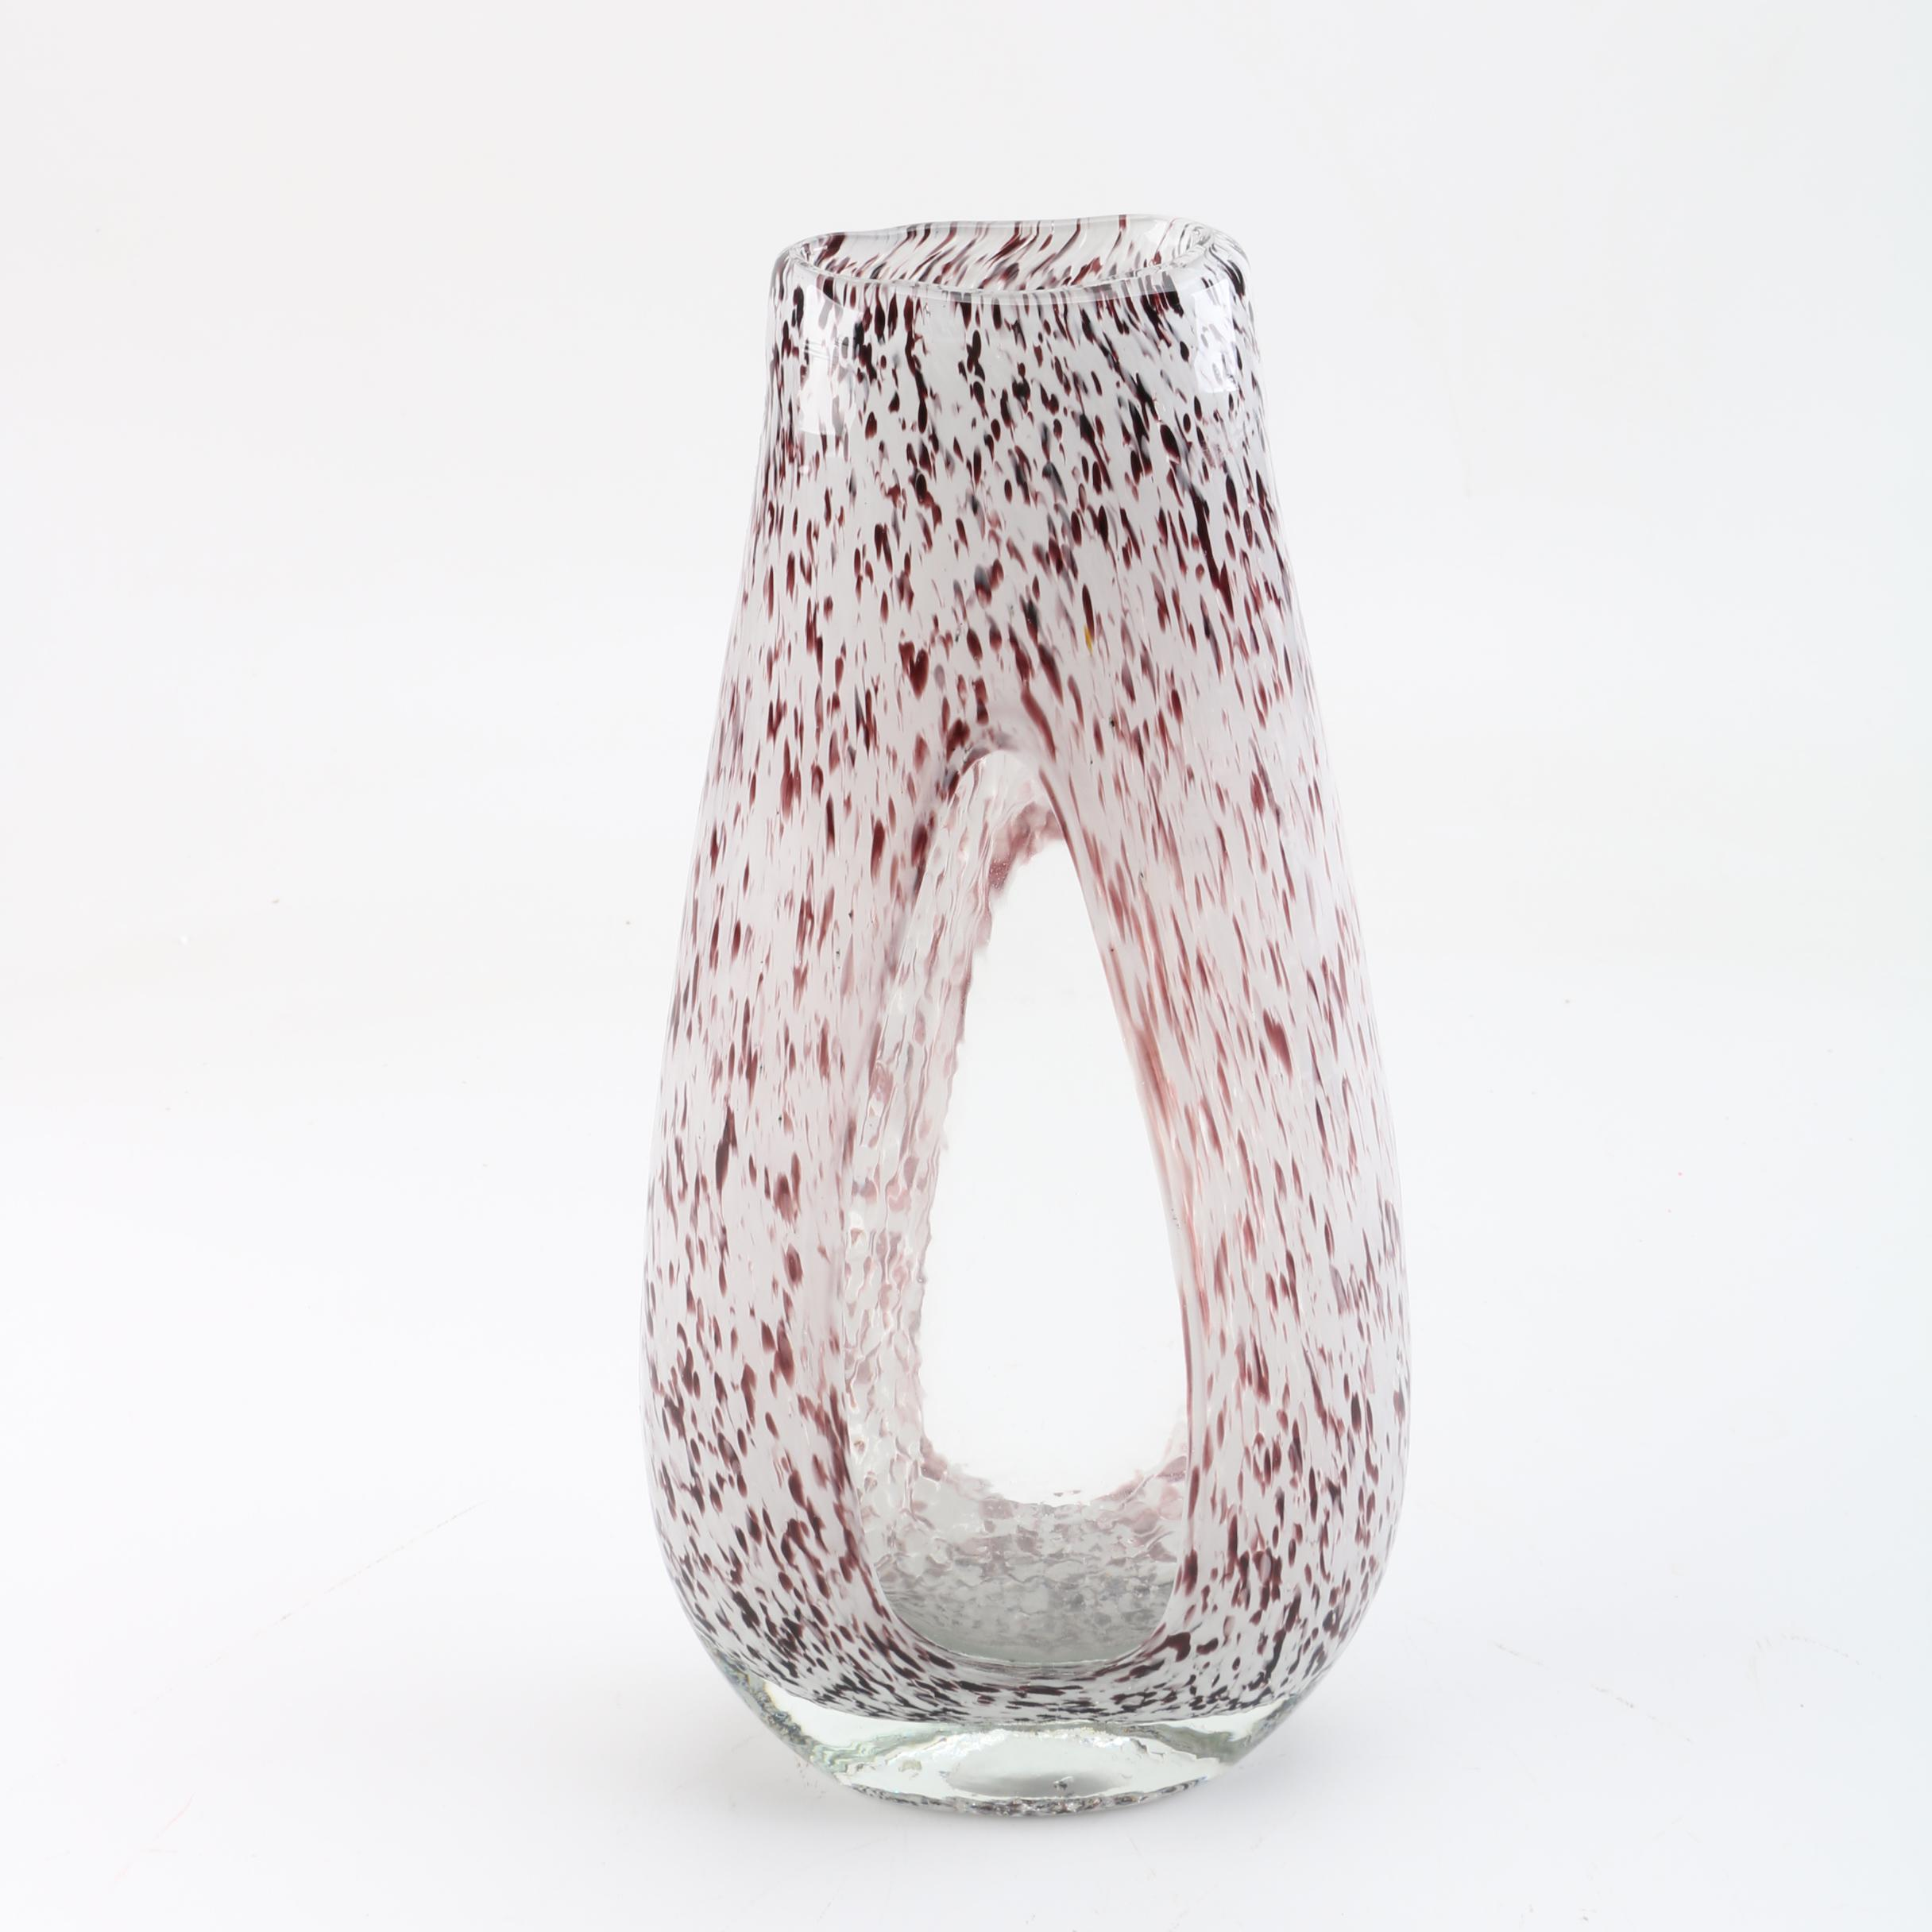 Black and white art glass vase